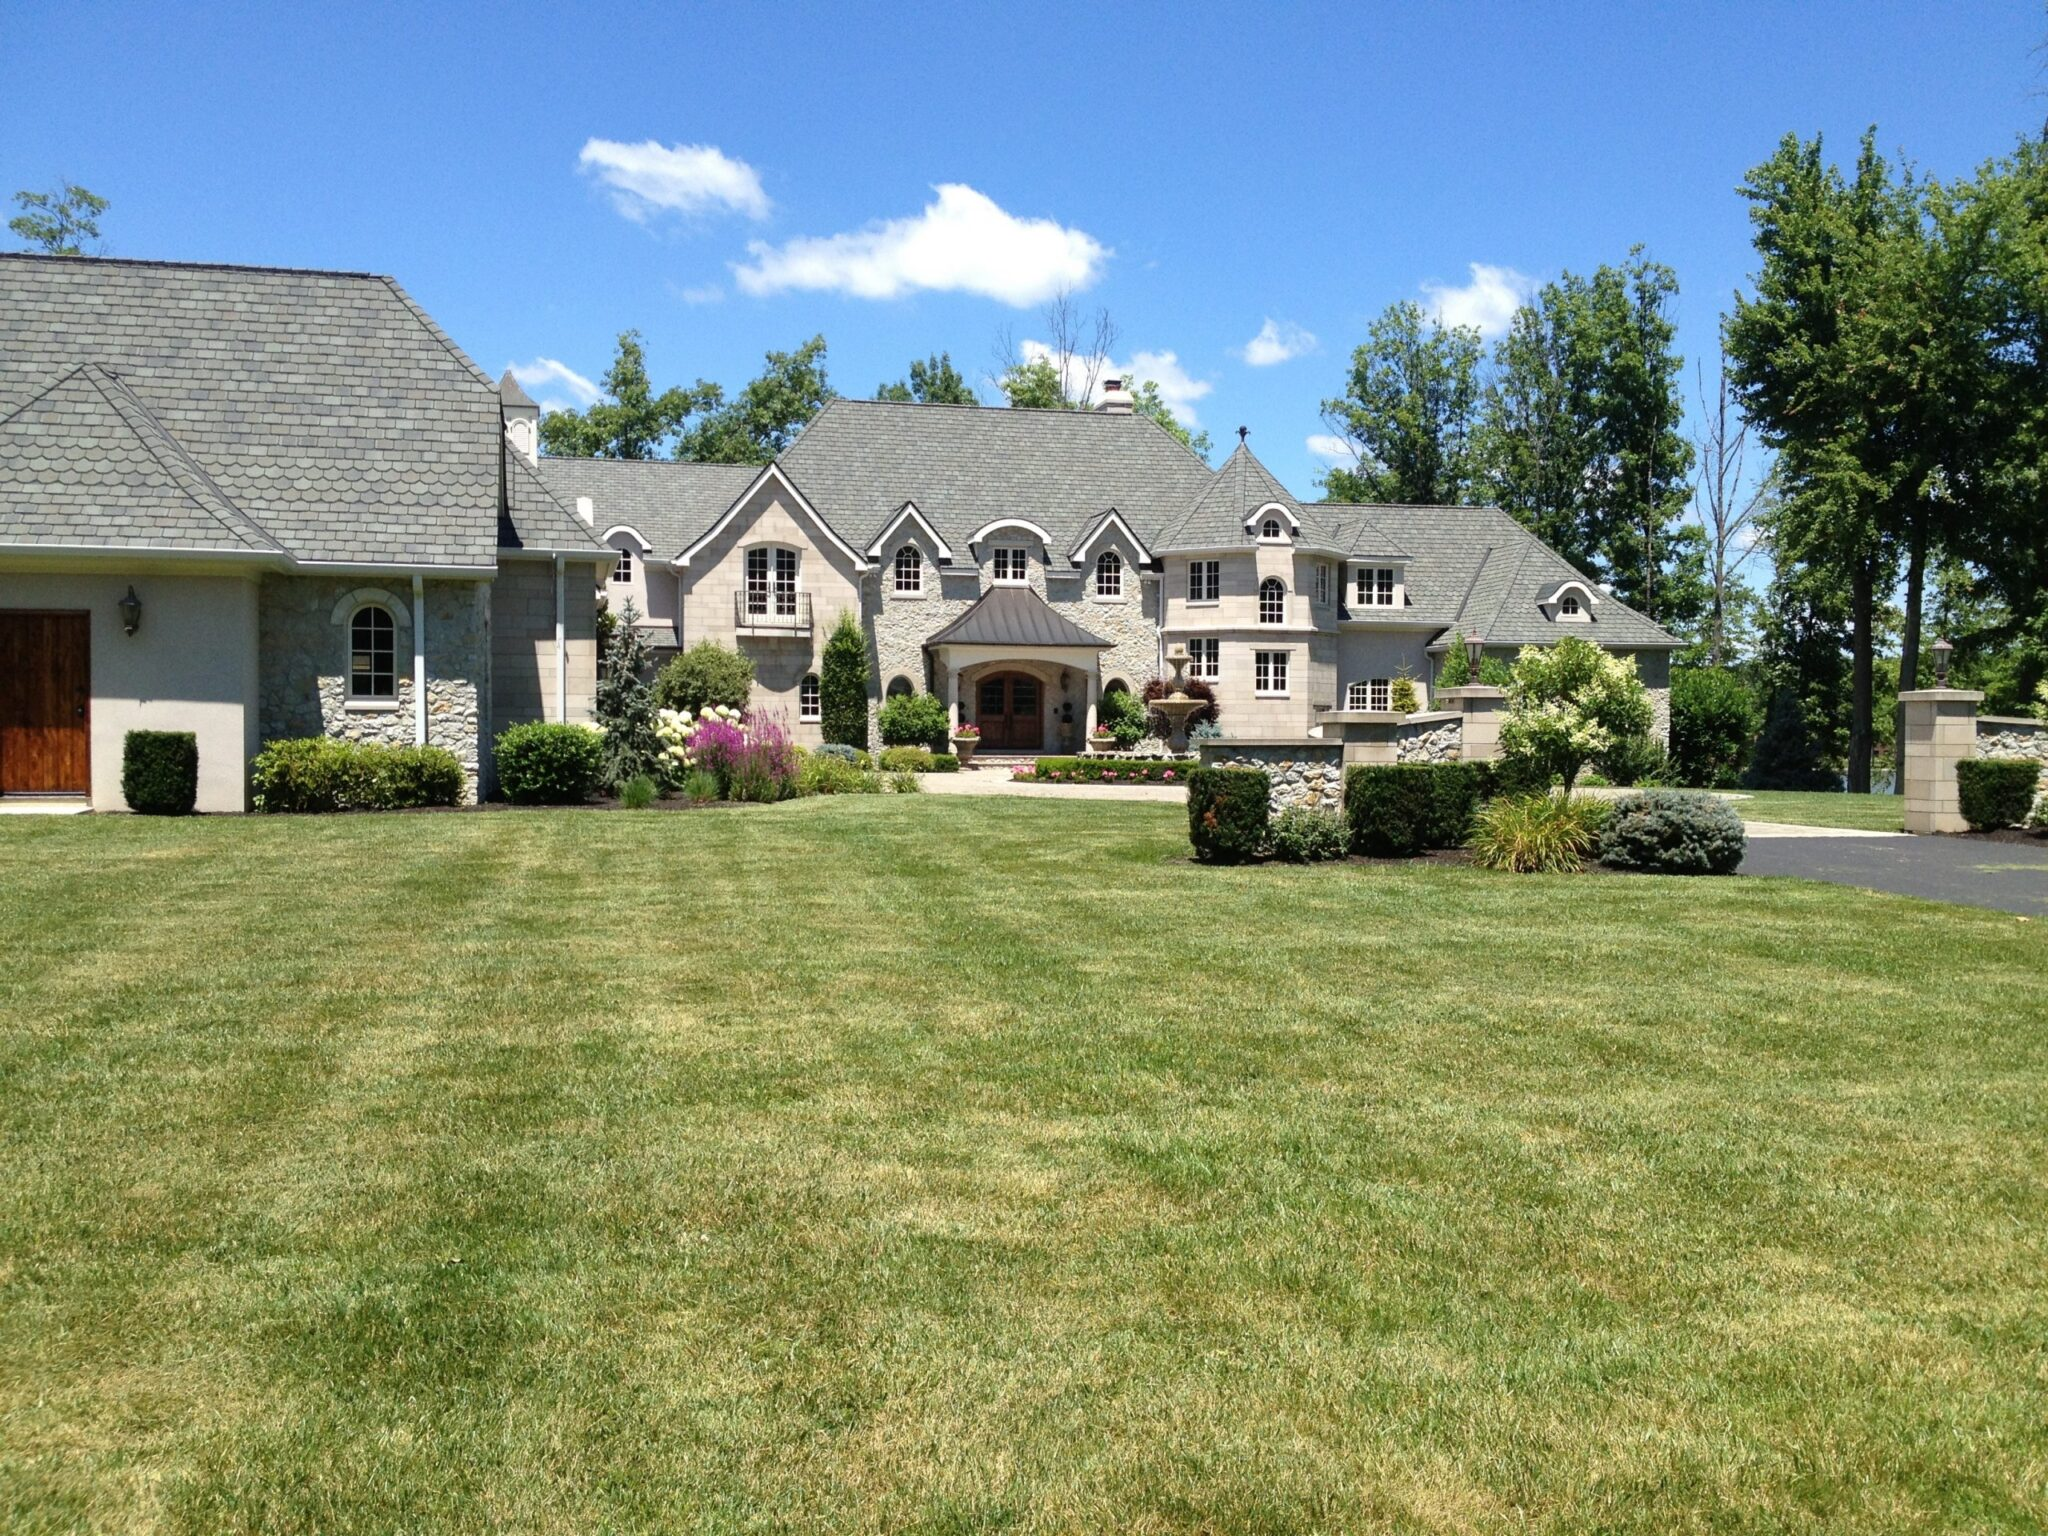 Moster Turf Residential Lawn Care